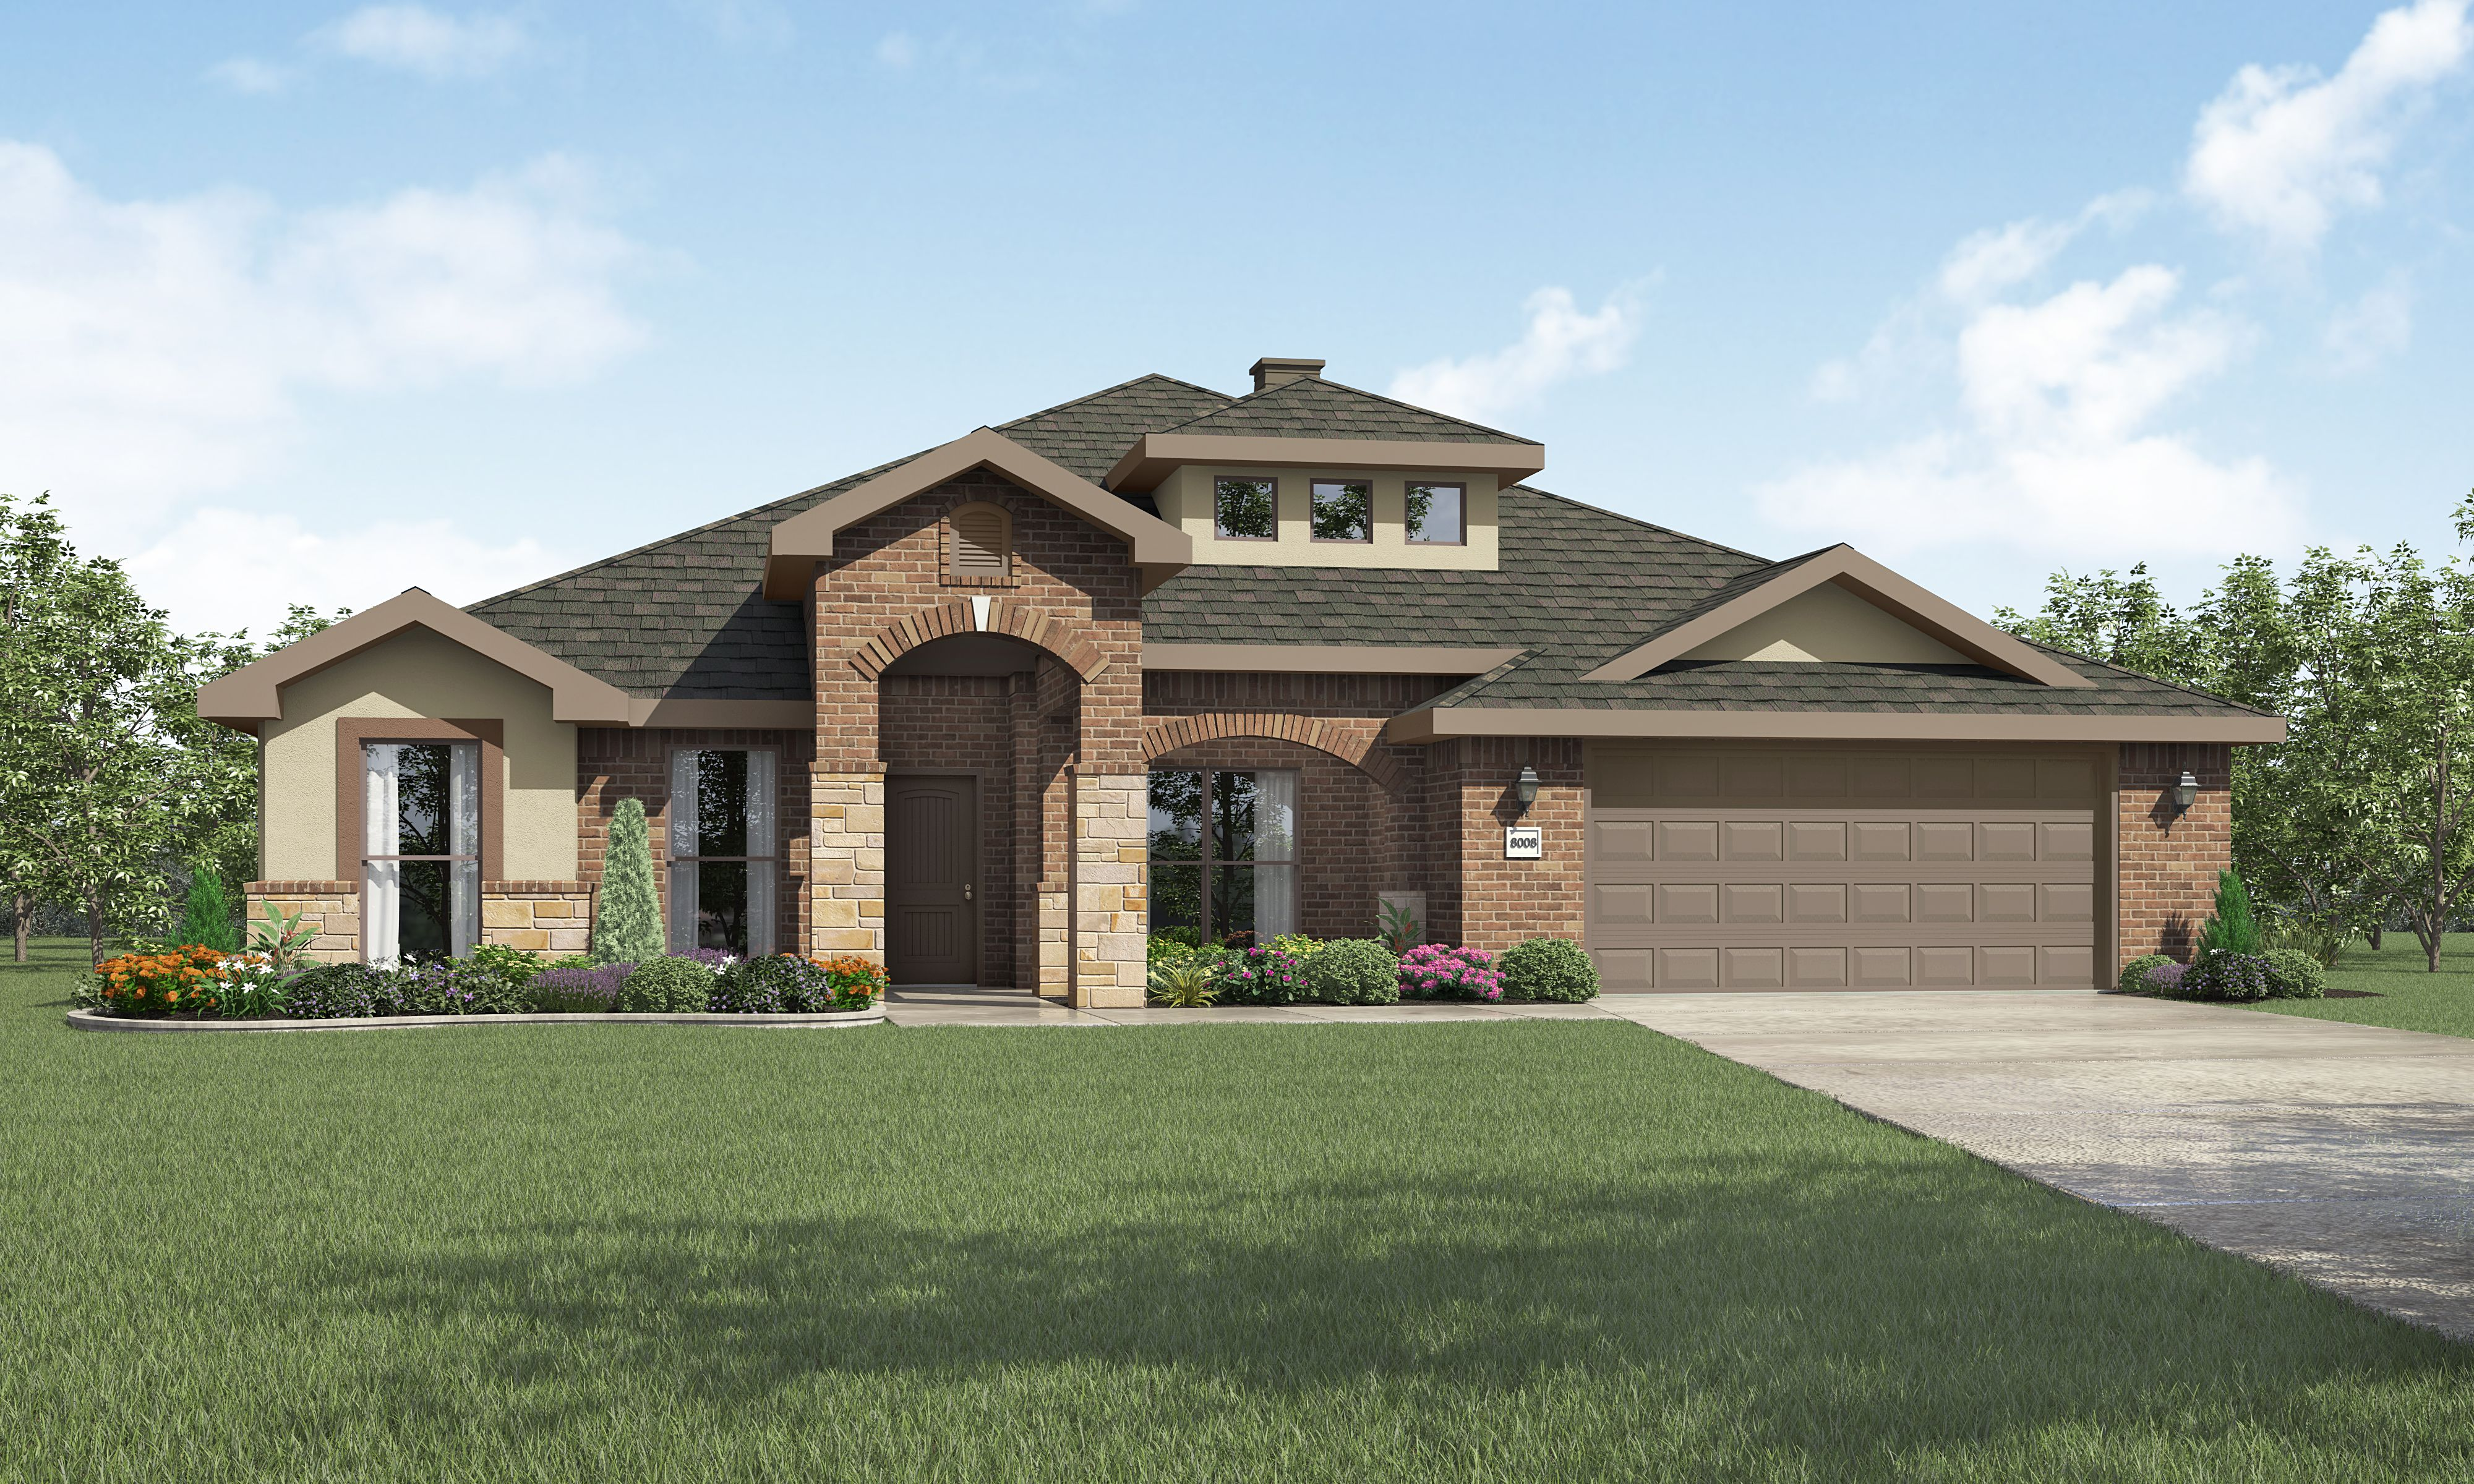 Single Family for Sale at Heritage Hills - Tera 8780 Heritage Hills Parkway Amarillo, Texas 79119 United States